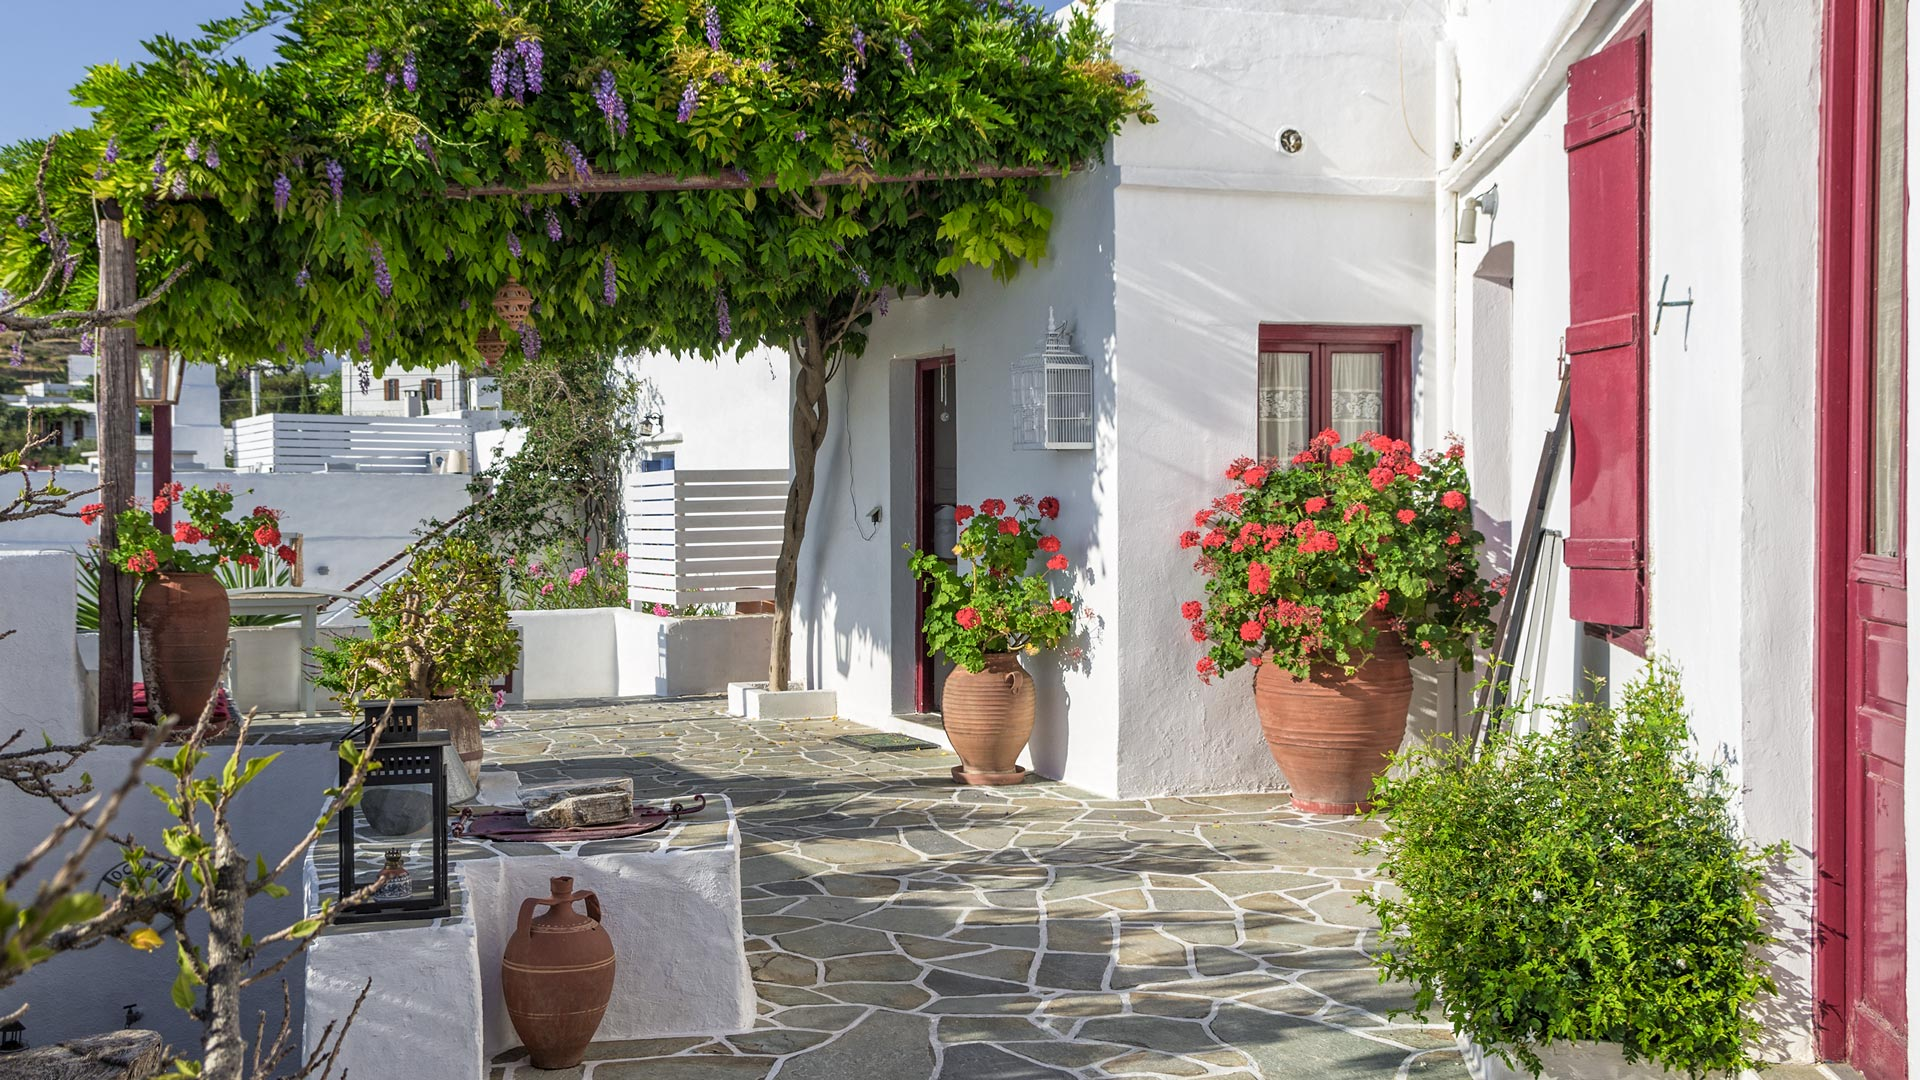 Whether it's the little whitewashed alleyways or the coloured doors and window frames, Apollonia will capture your heart